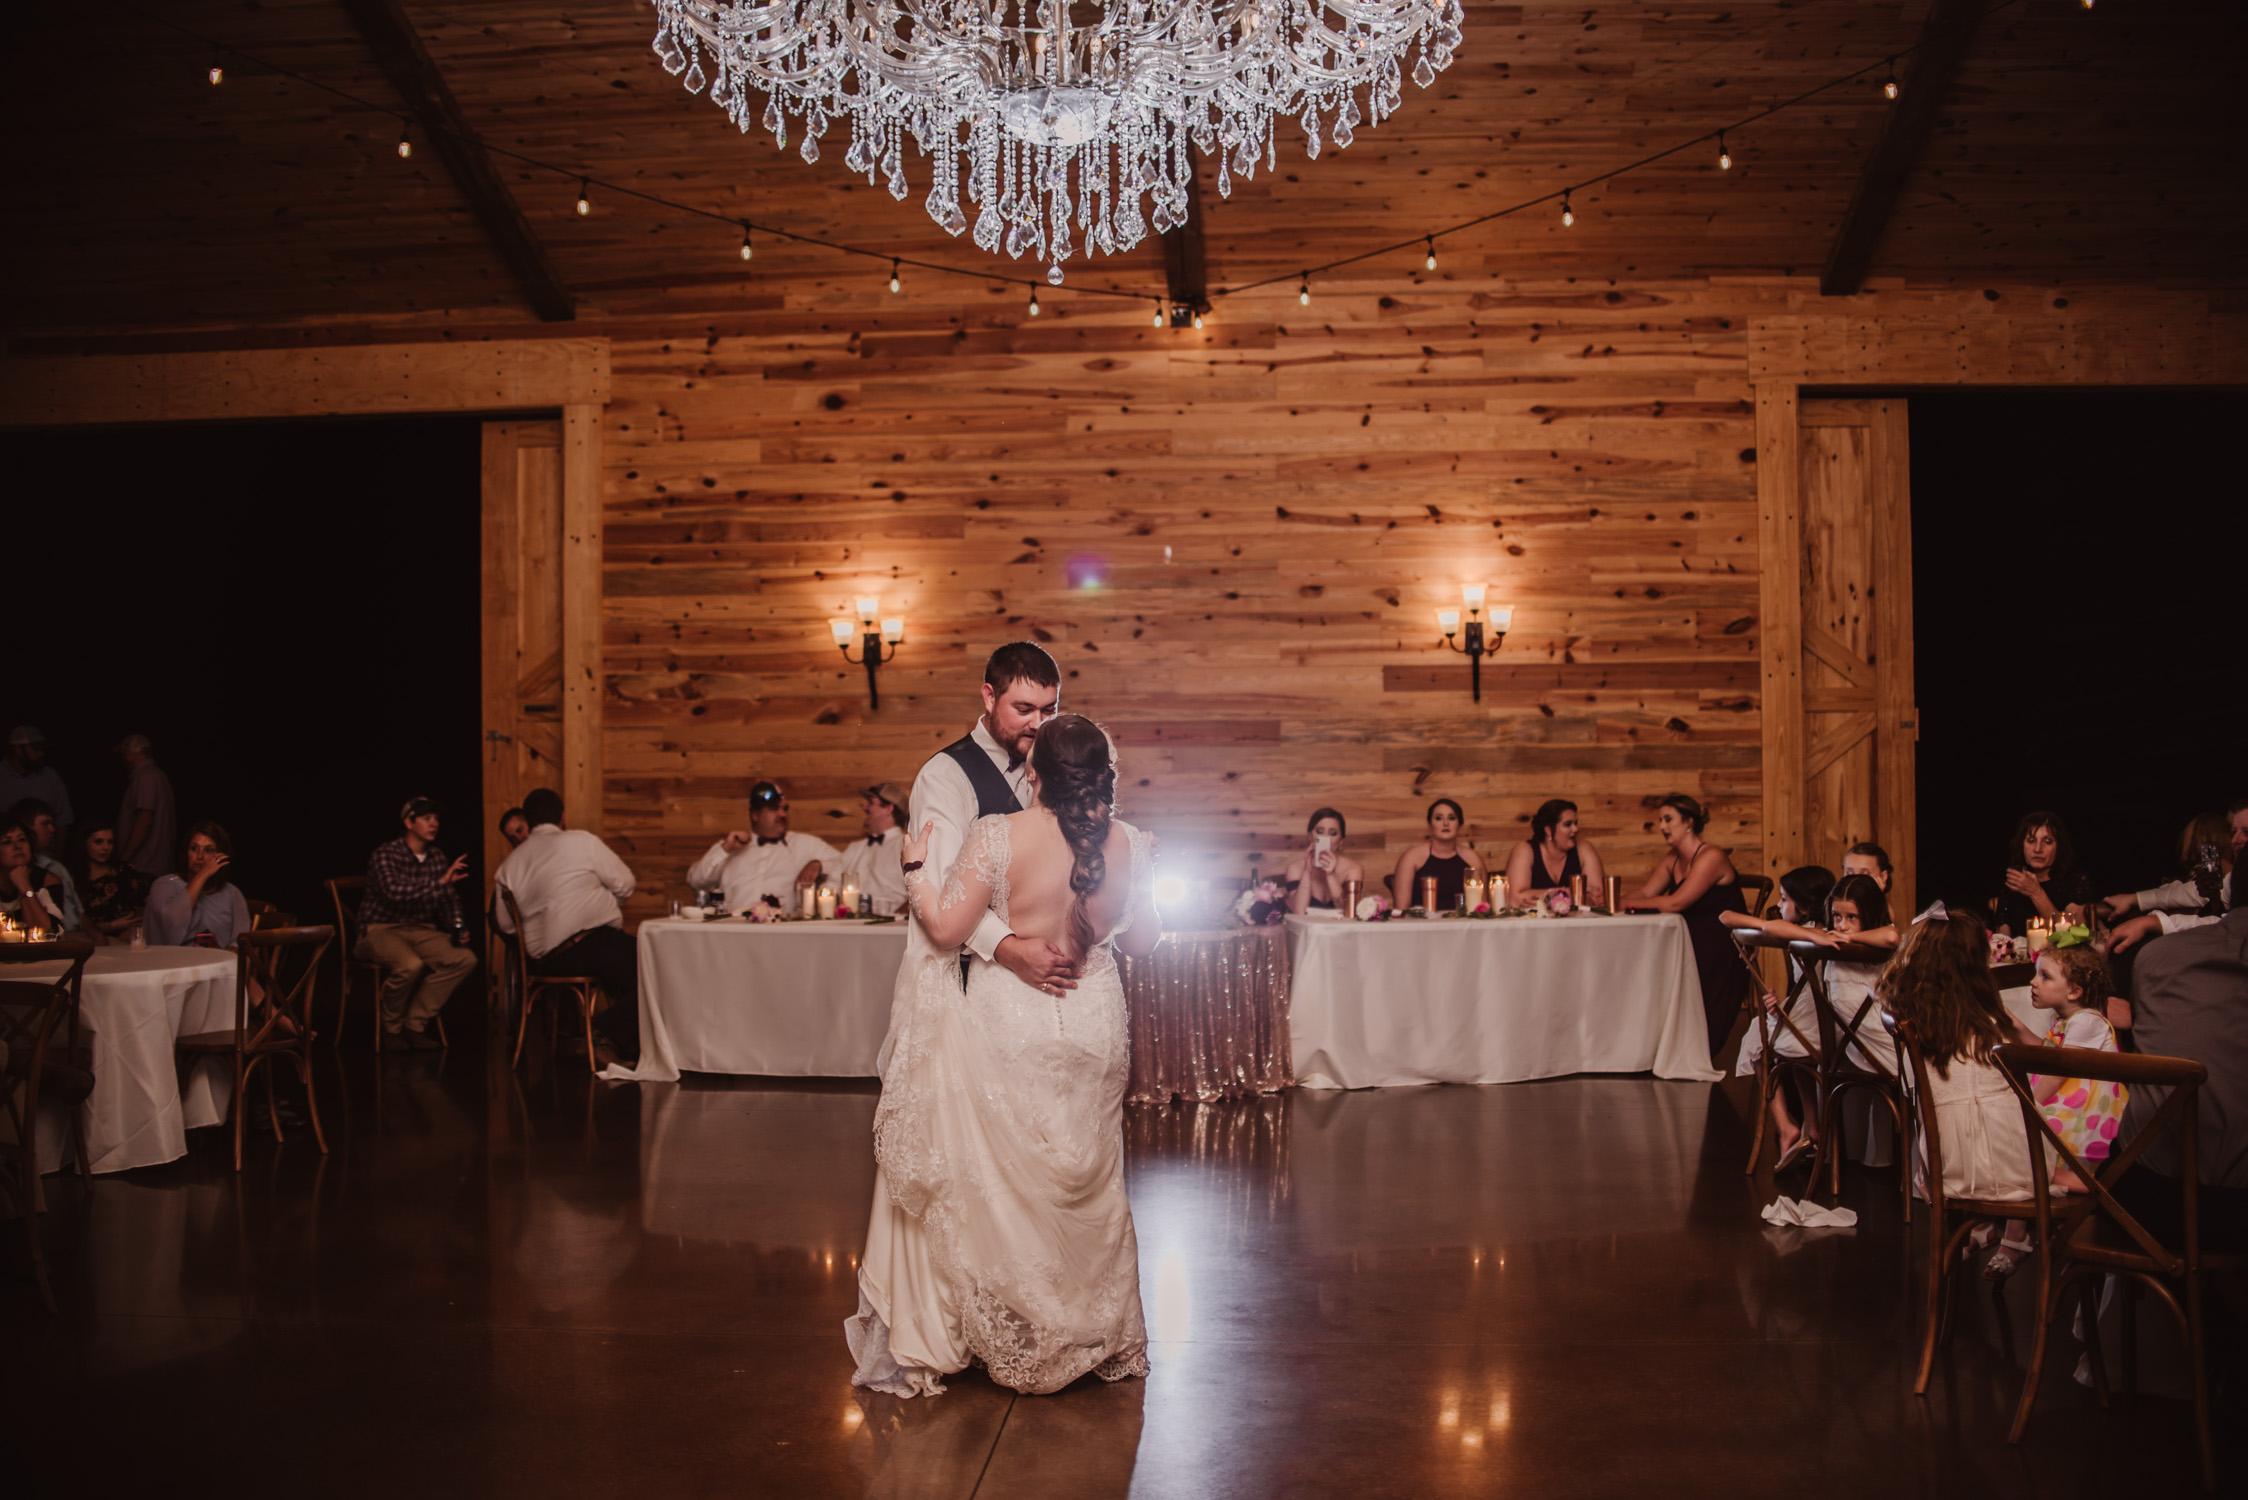 Classy, Southern, Country Wedding | Reception at Atkinson Farms in Danville, Virginia | Greensboro Winston-Salem, NC Wedding Photographer